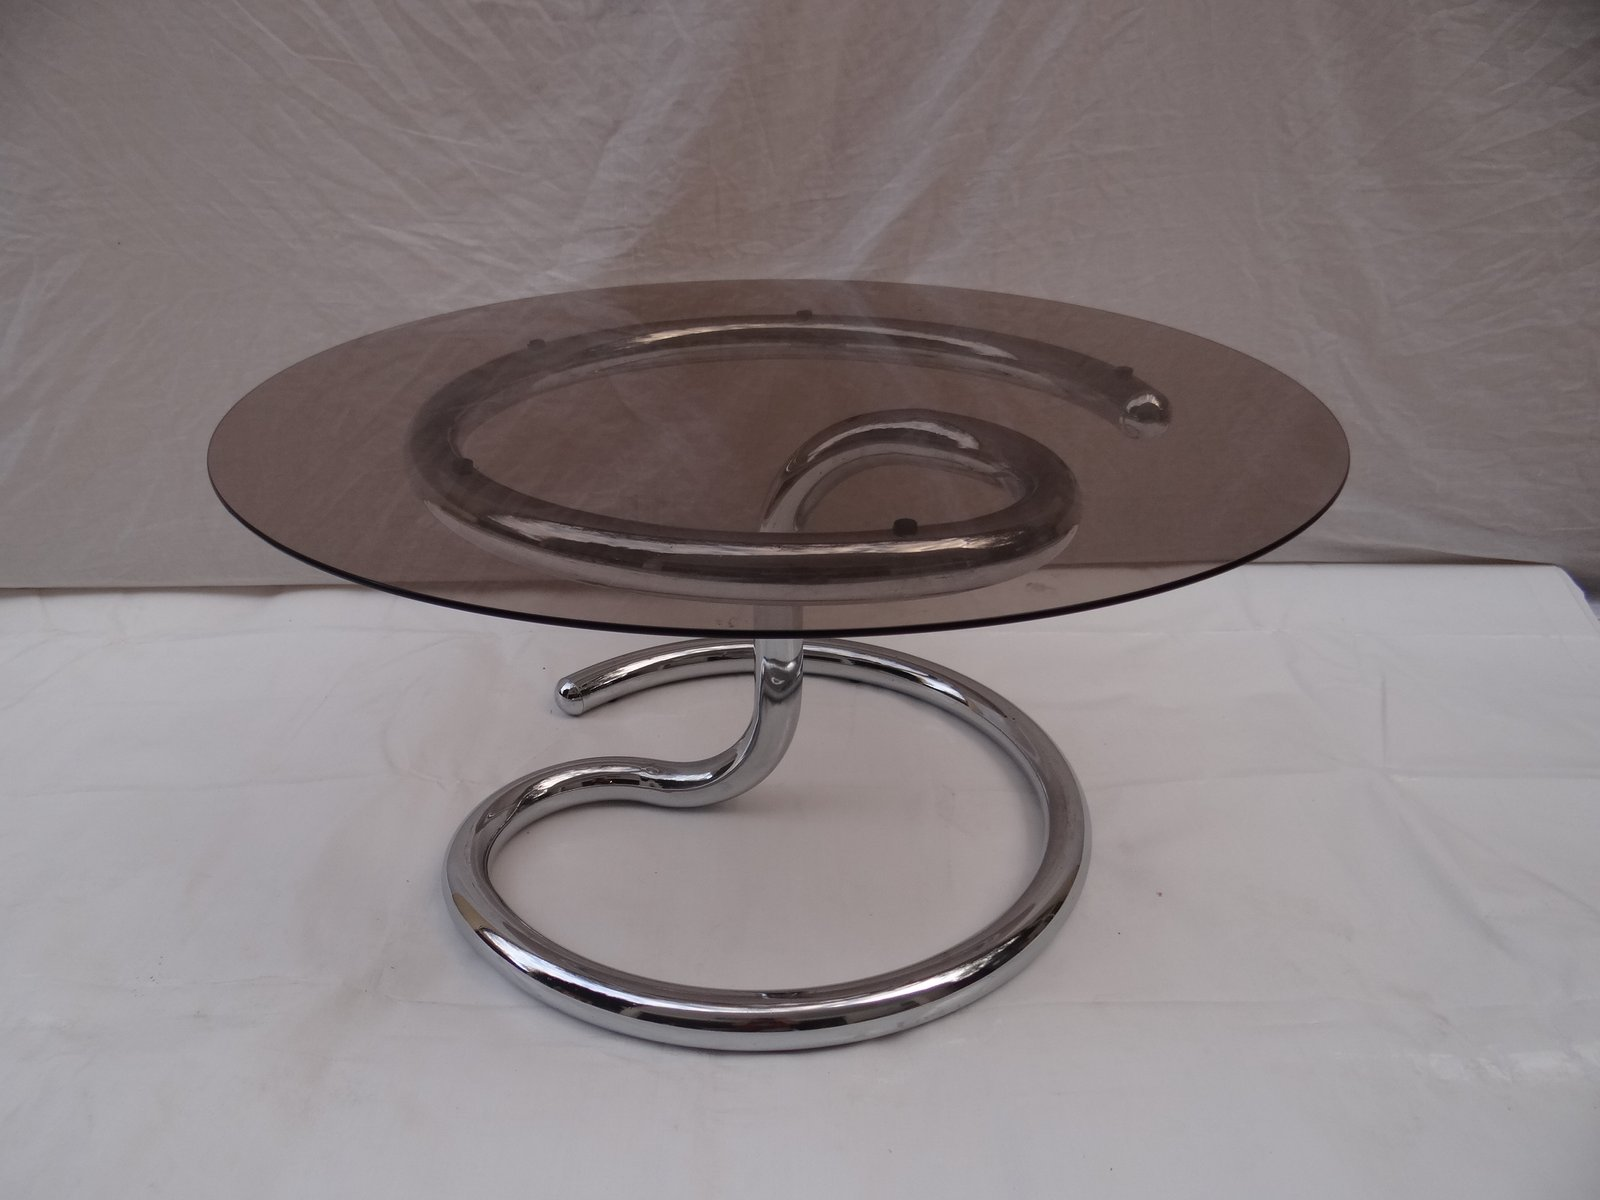 Vintage Anaconda Coffee Table by Paul Tuttle for Strässle